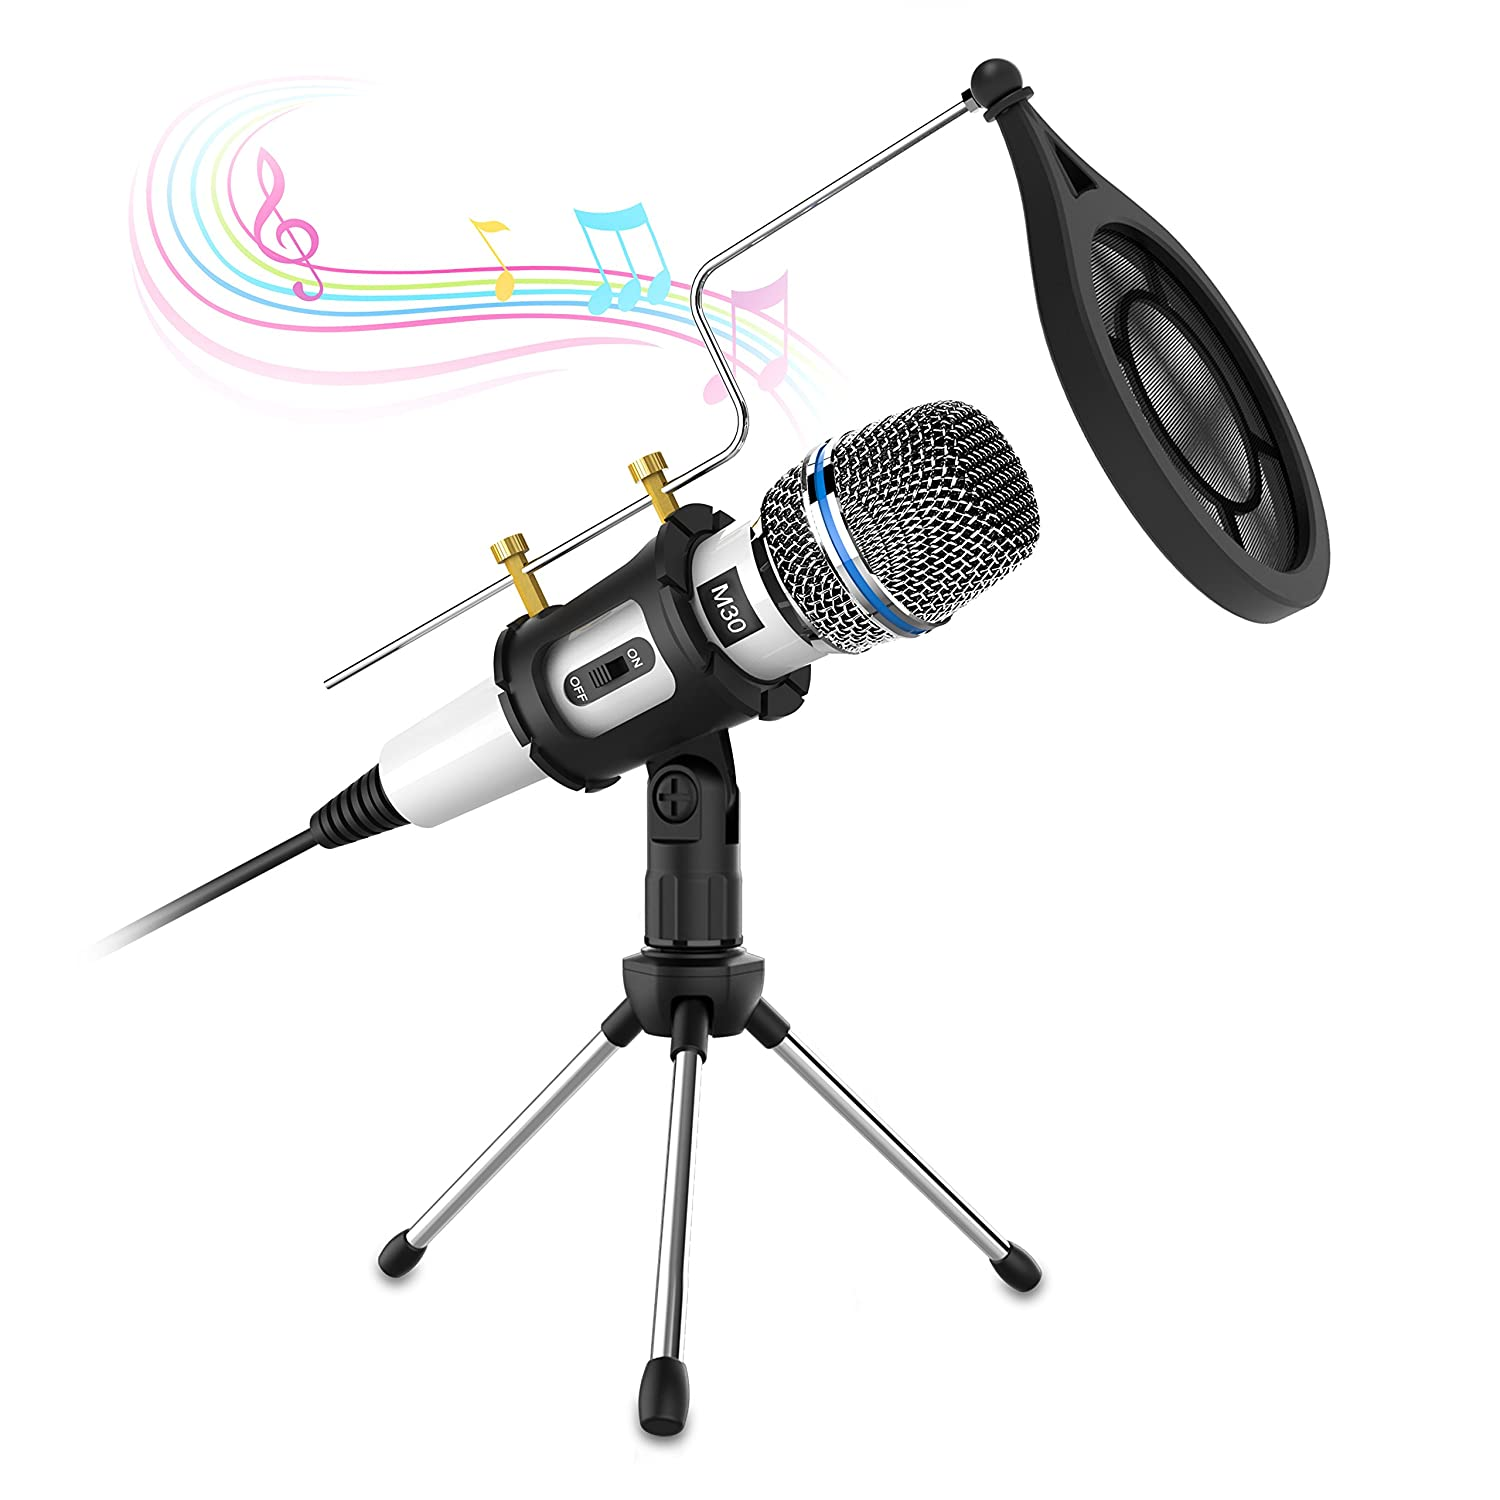 Computer Condenser Microphone, Valoin 3.5mm Plug & Play Recording Microphone for Computer Laptop Desktop Podcasting Interview Online Chatting and More (Black)